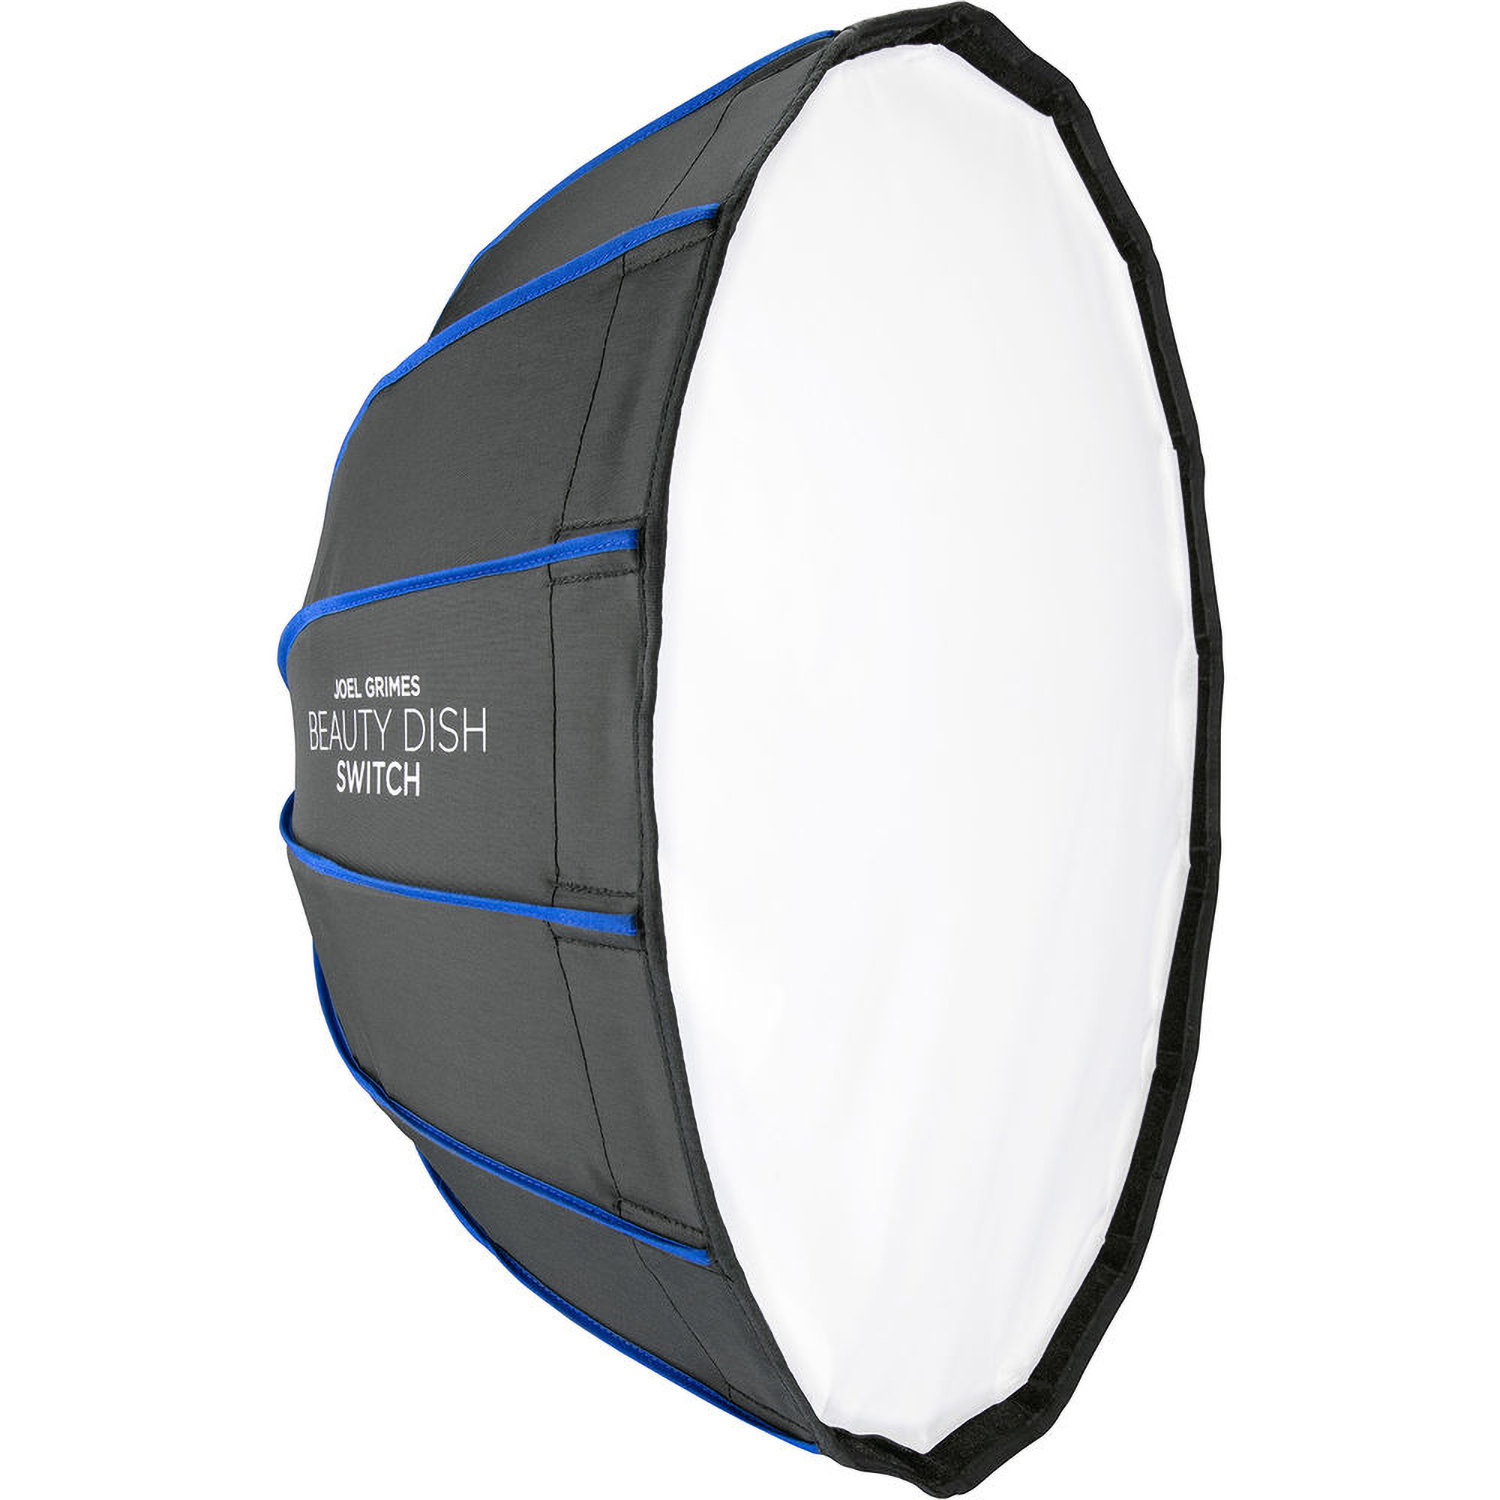 Image of Westcott Switch Beauty Dish